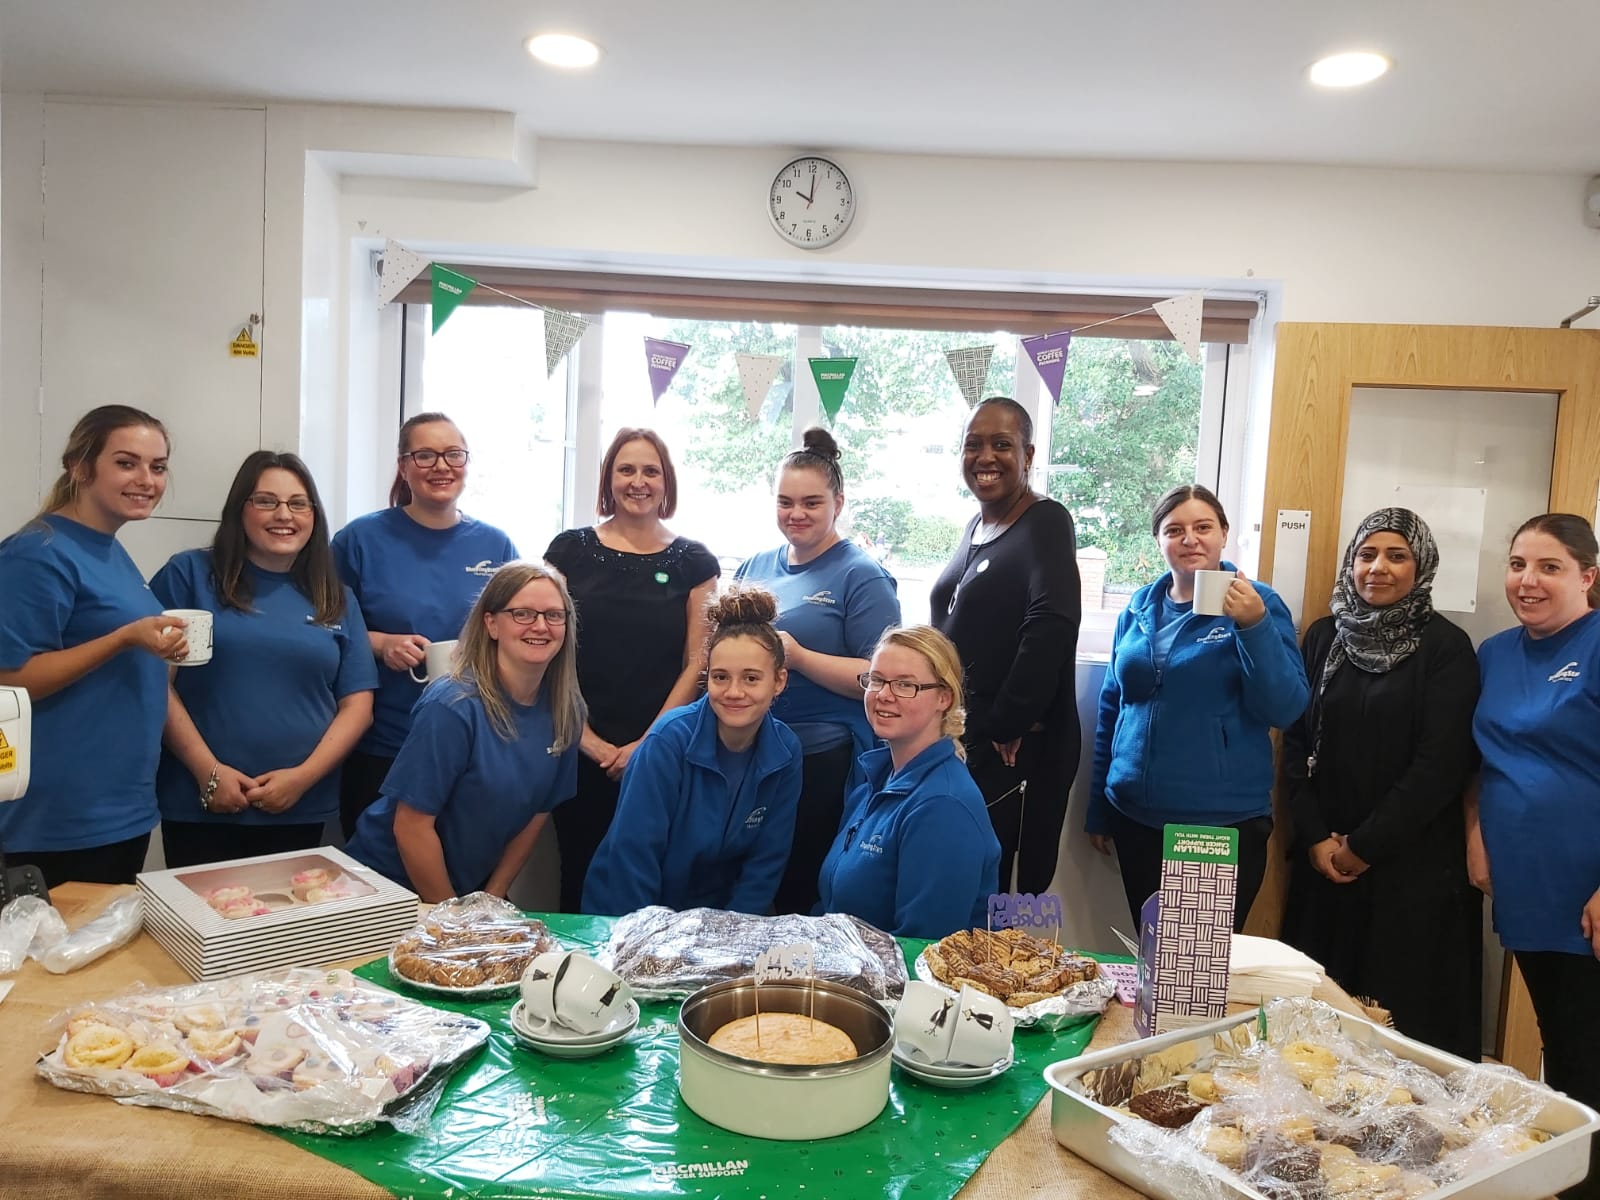 On Saturday, the team at Kings Norton welcomed current and prospective parents to an Open Day and Coffee morning, raising over £200 for Macmillan.